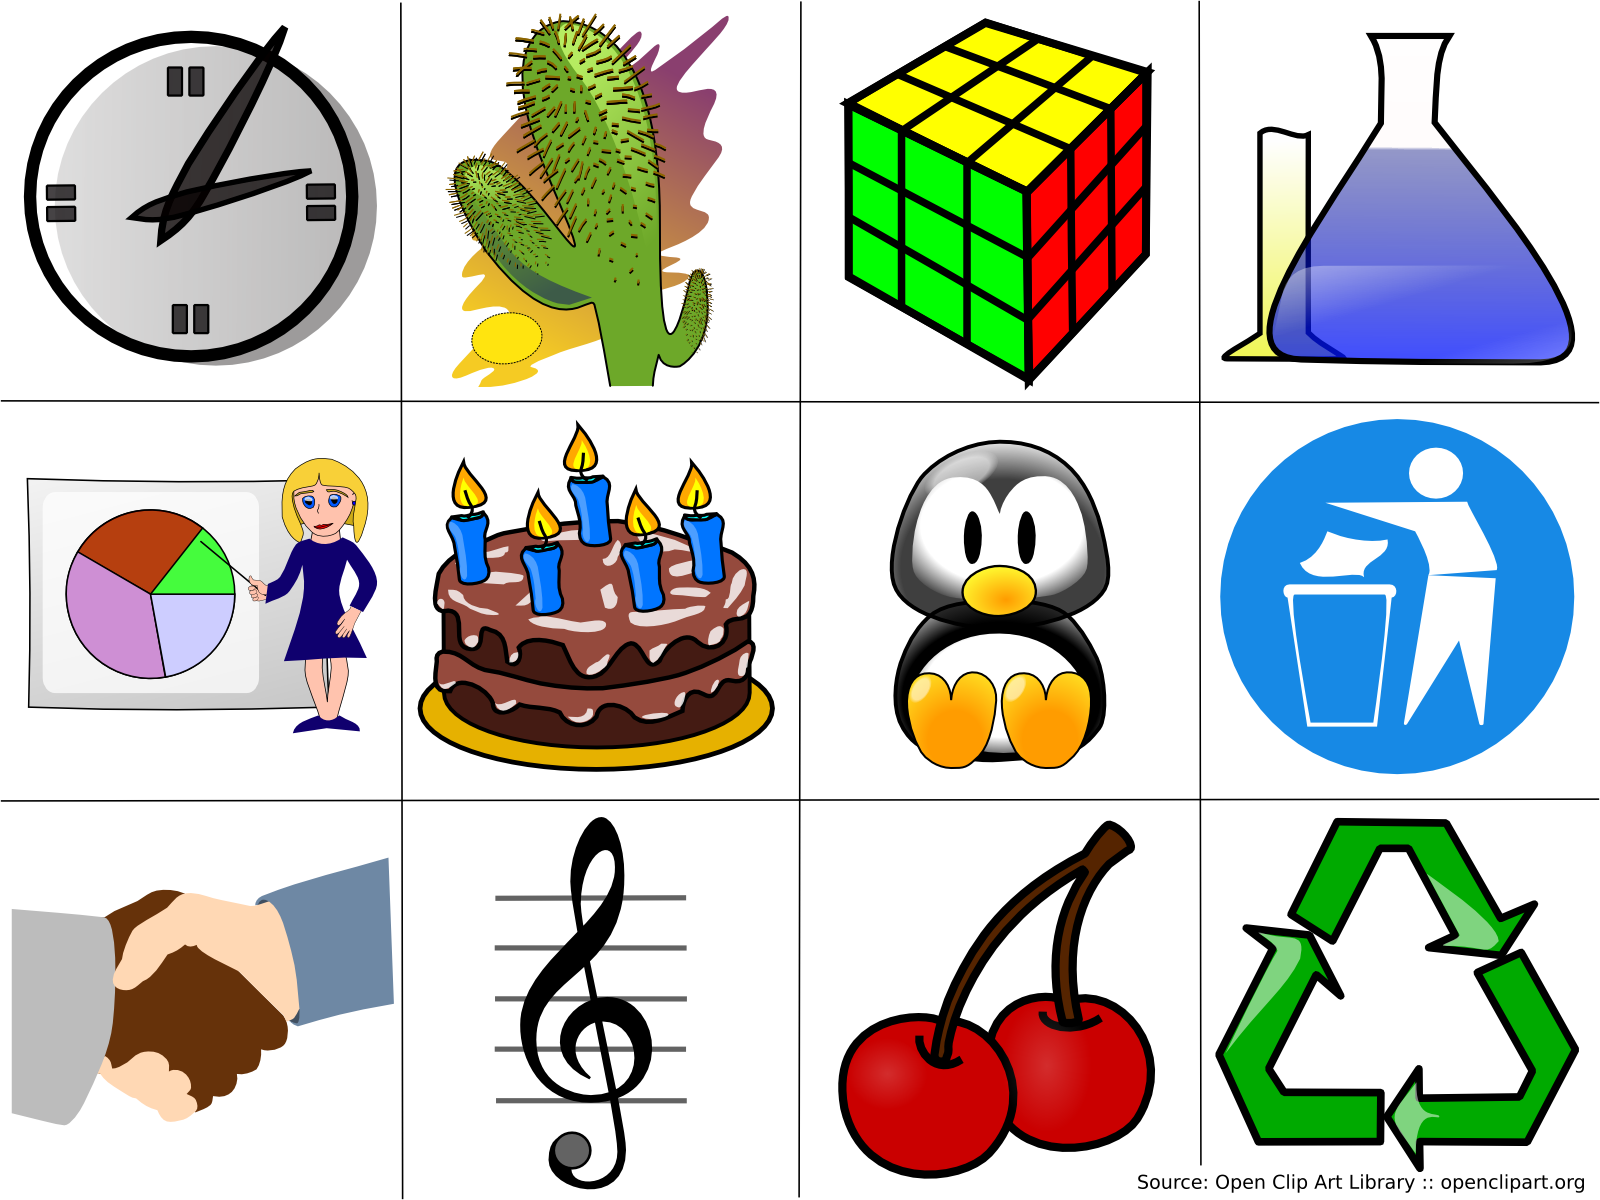 Clip art - Wikipedia, the free encyclope-Clip art - Wikipedia, the free encyclopedia-1